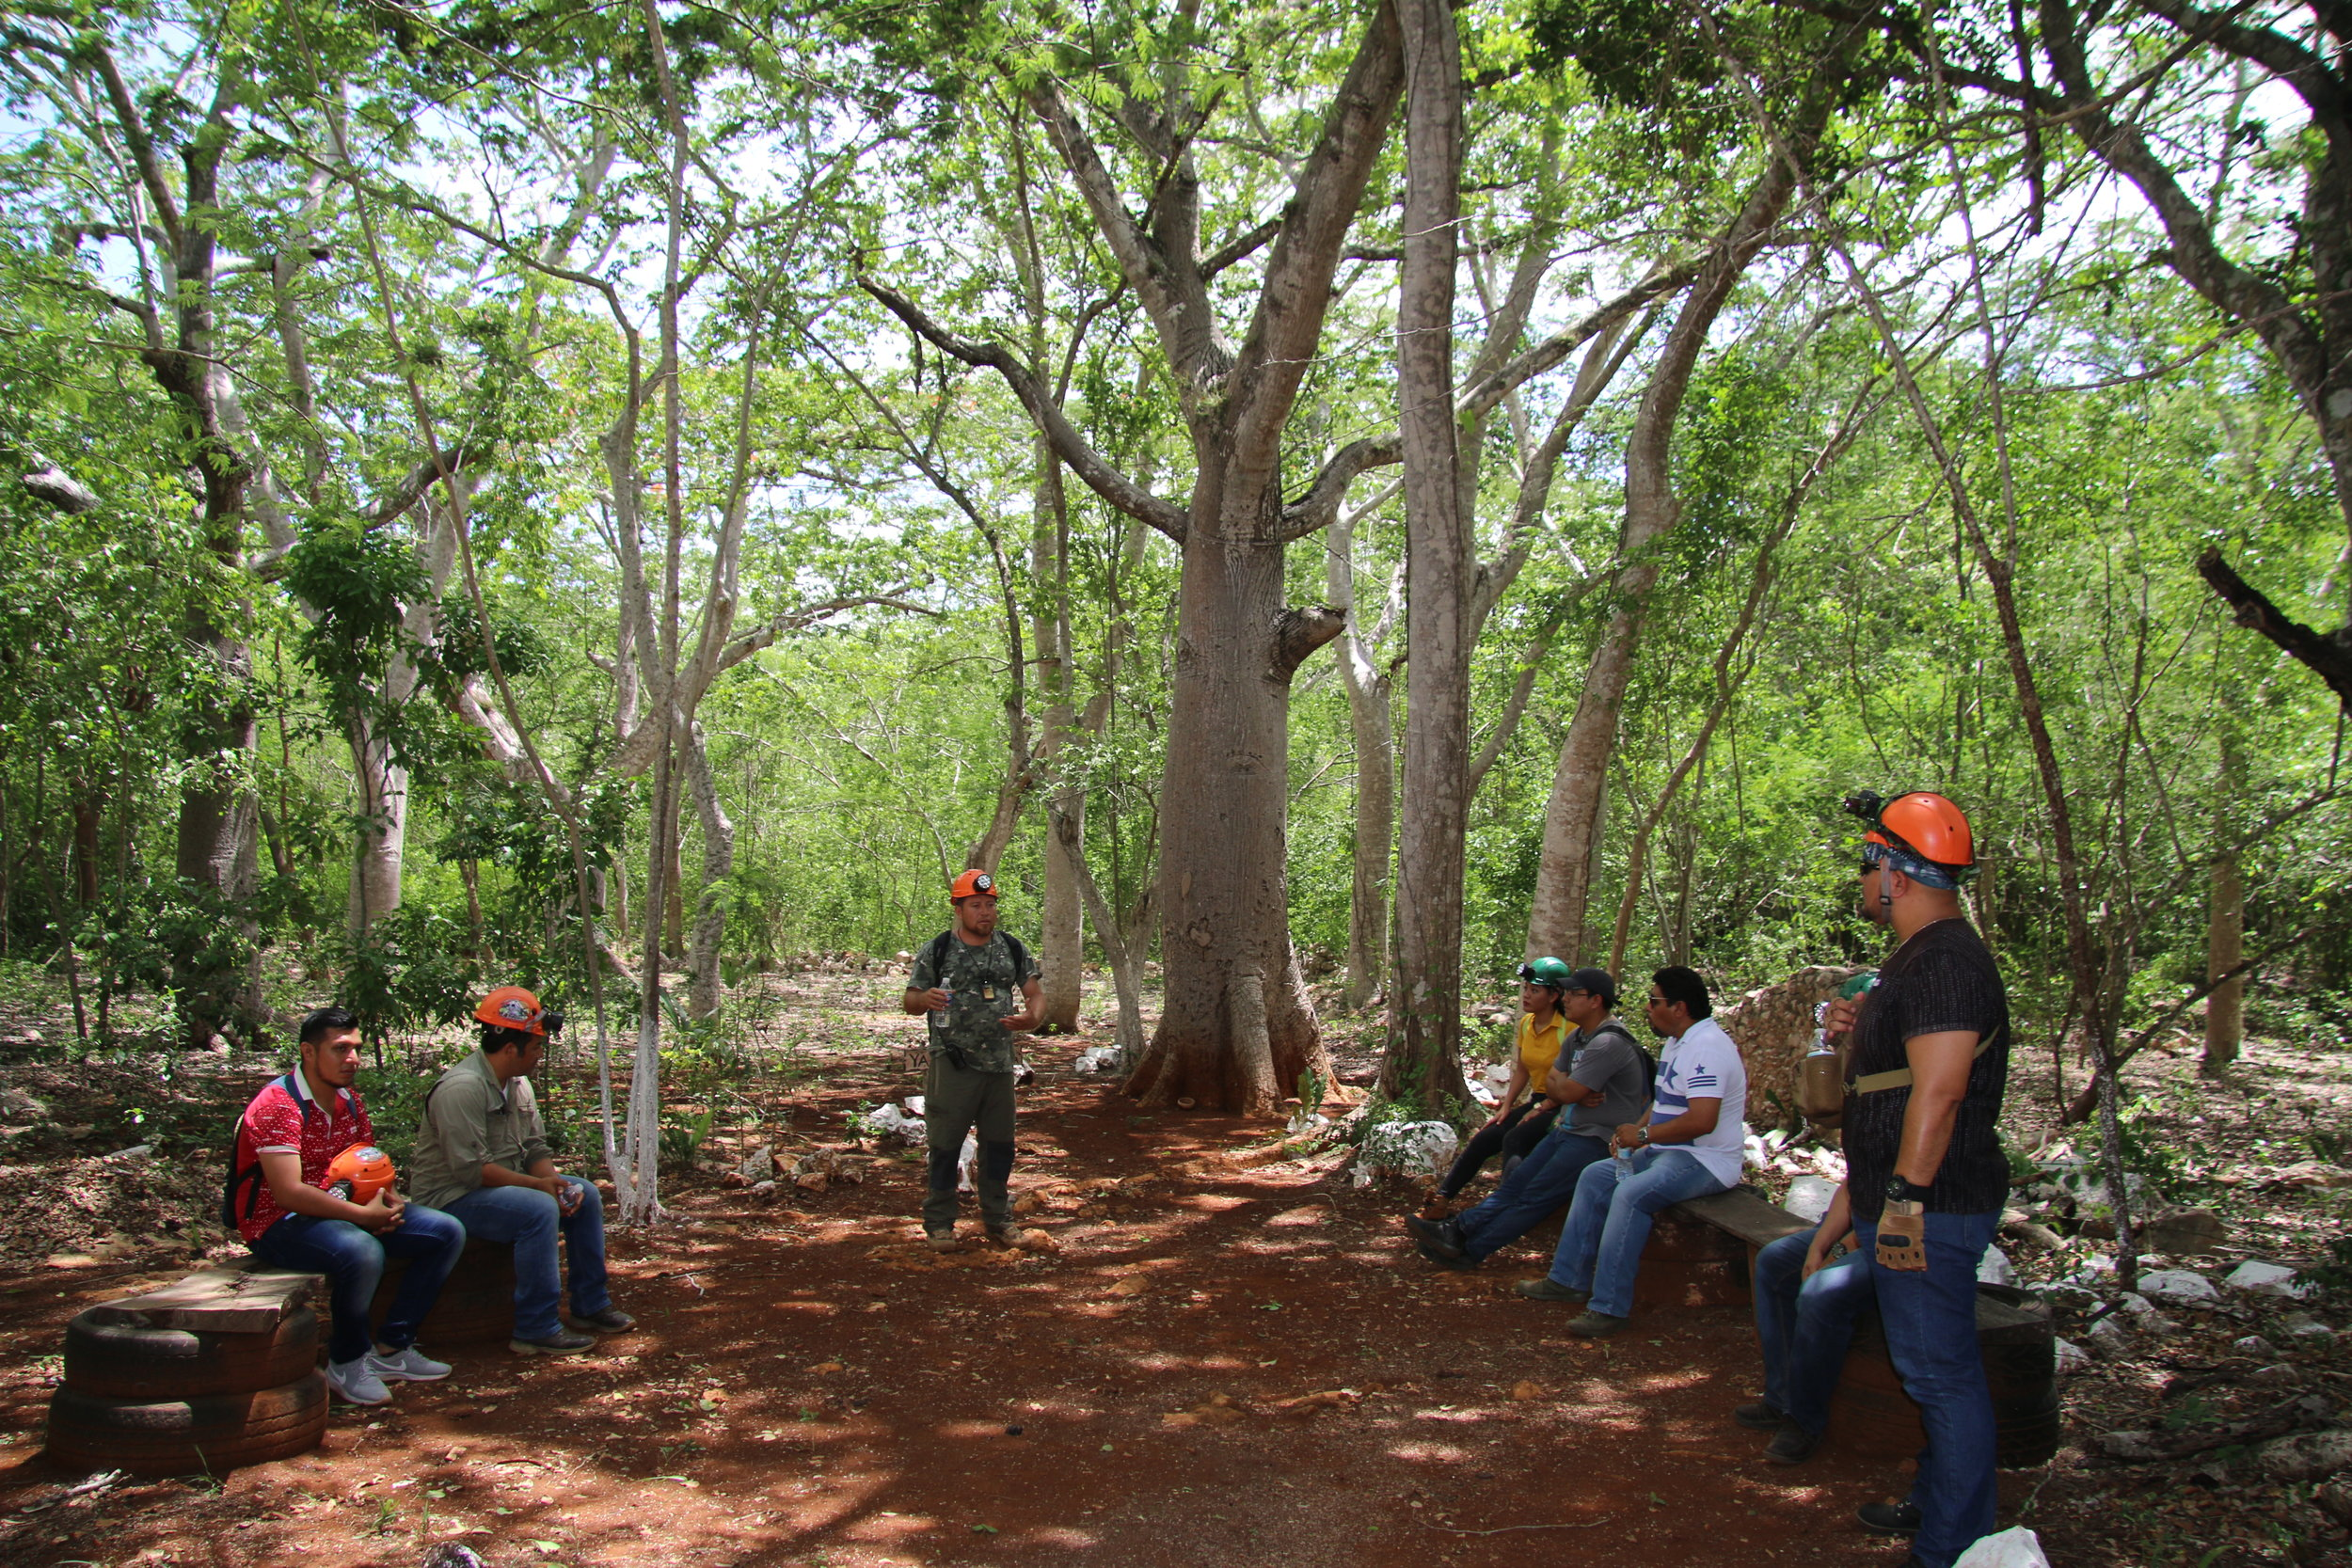 First stop under the Ceiba tree, a little history of the property